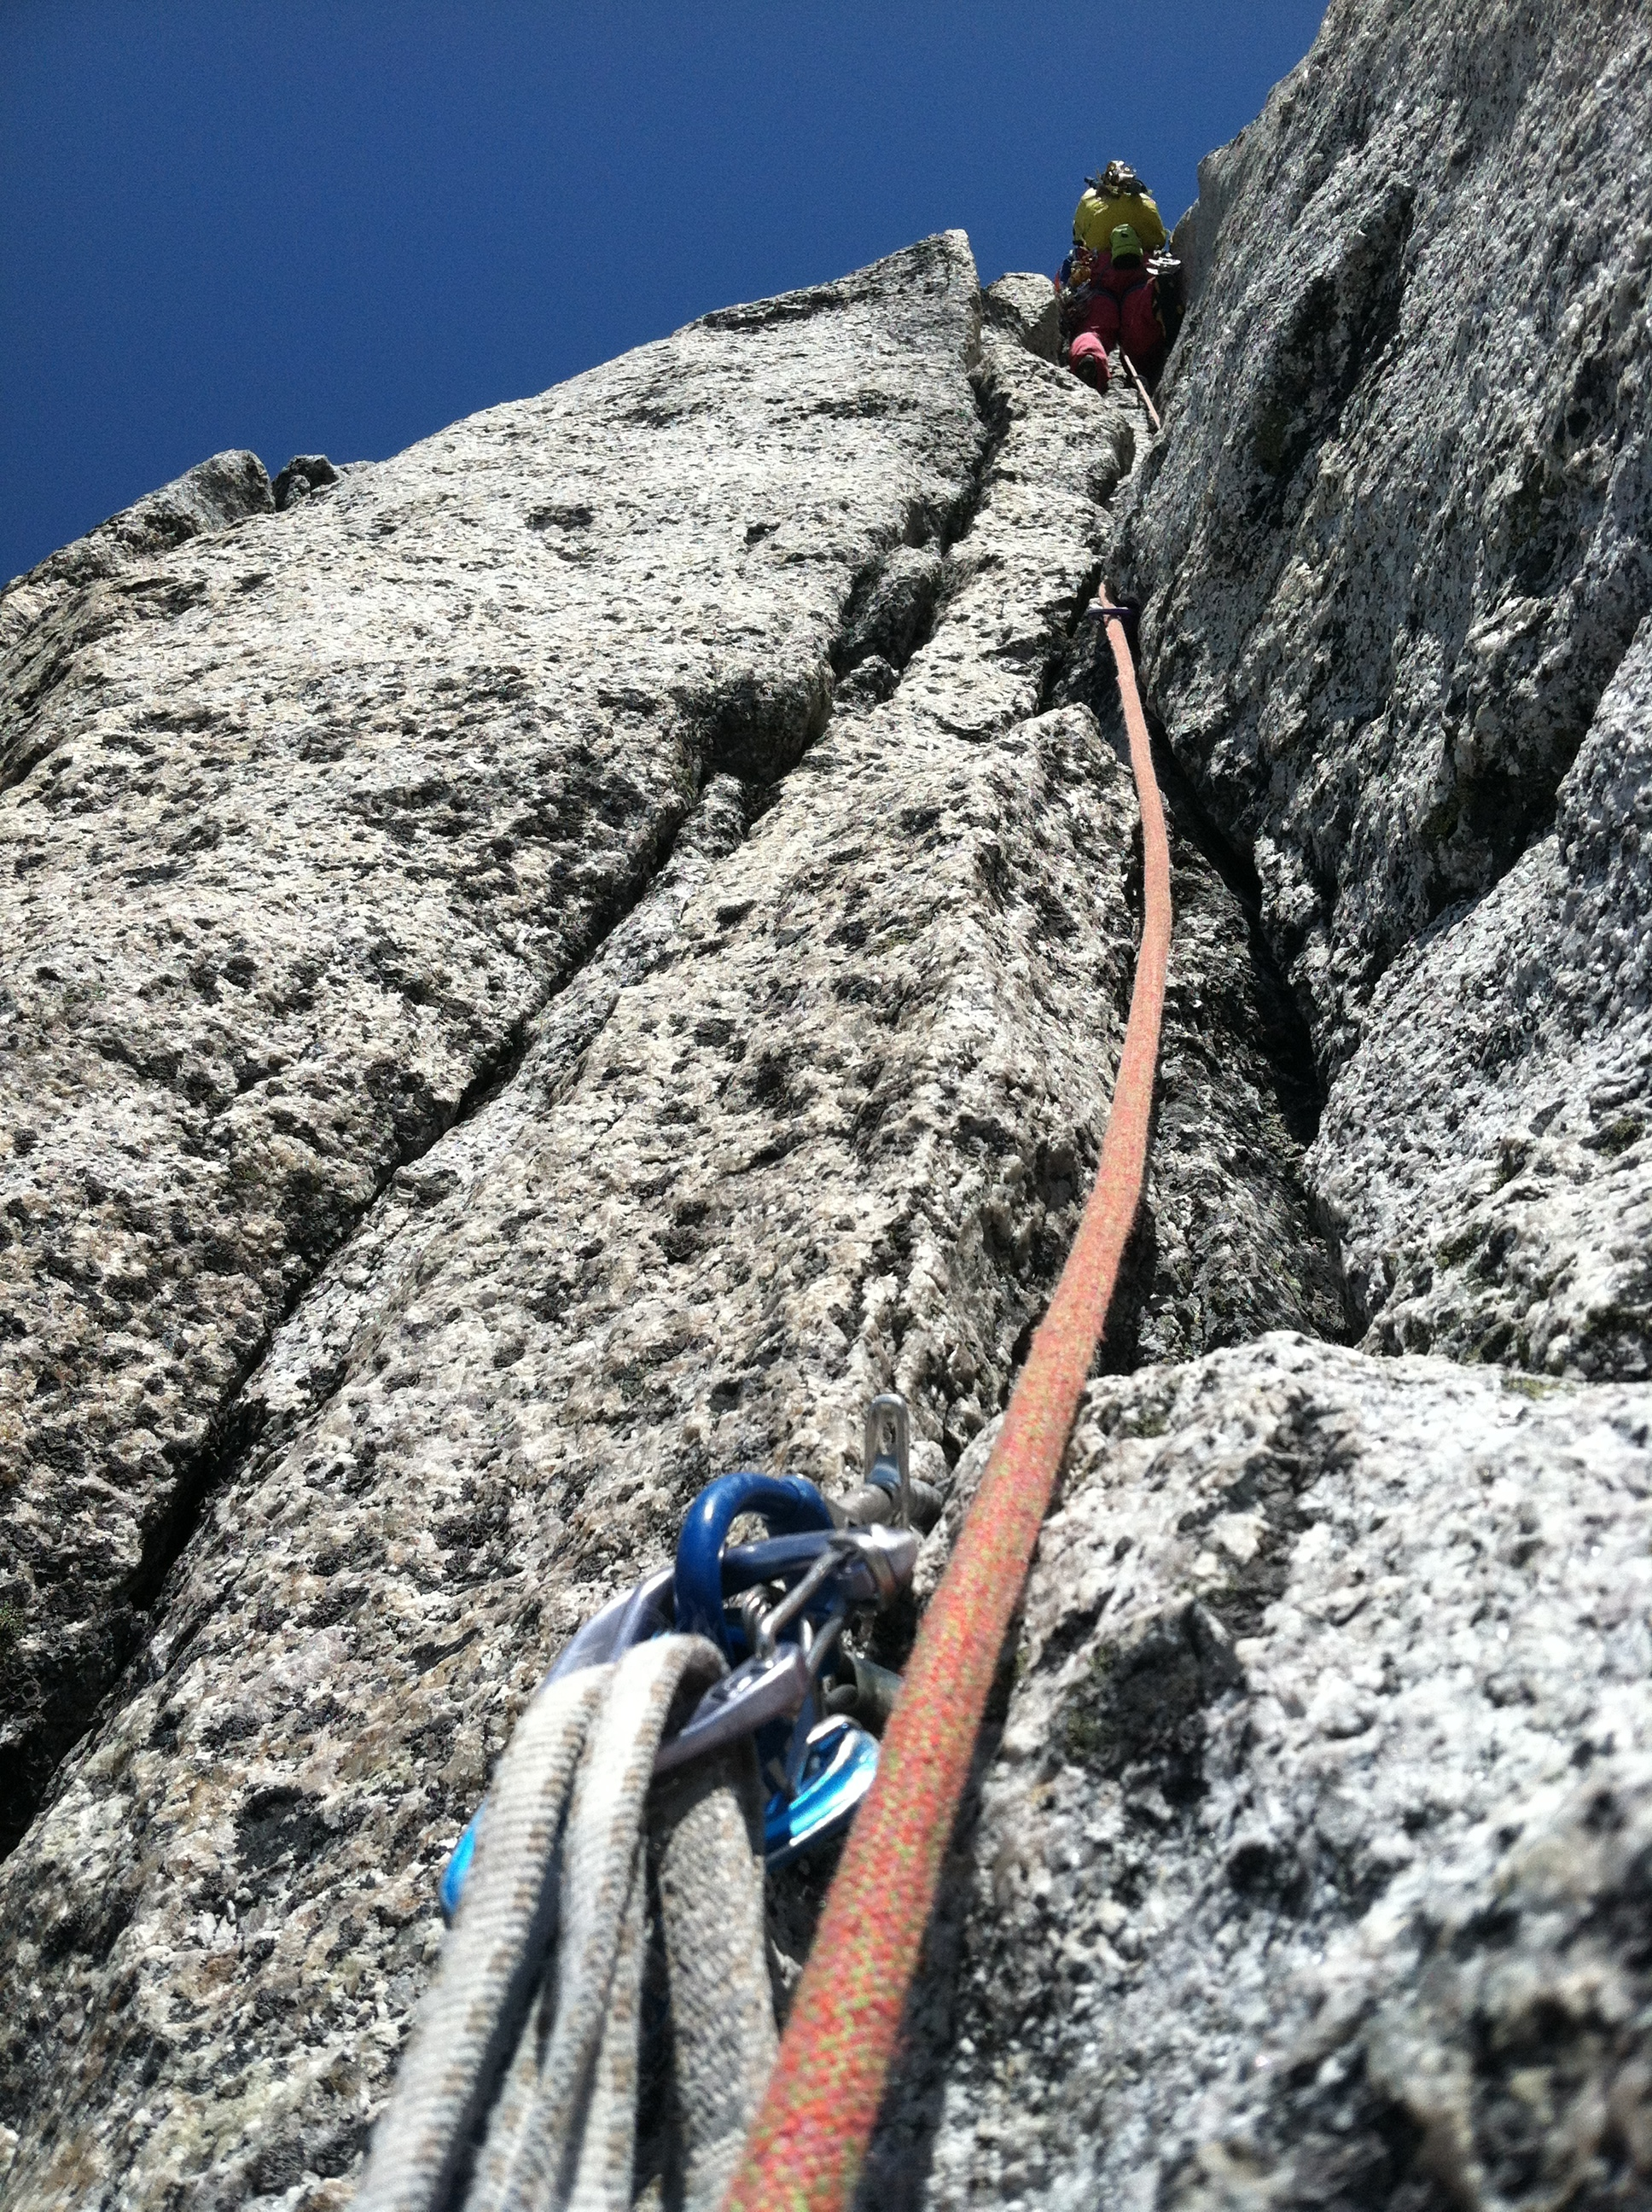 Bugaboos climbing is characterized by pristine granite cracks, and sometimes you must climb them with a full alpine pack. Photo by Brent Butler on the legendary Becky Chouinard during a beautiful dry spell in July '12.